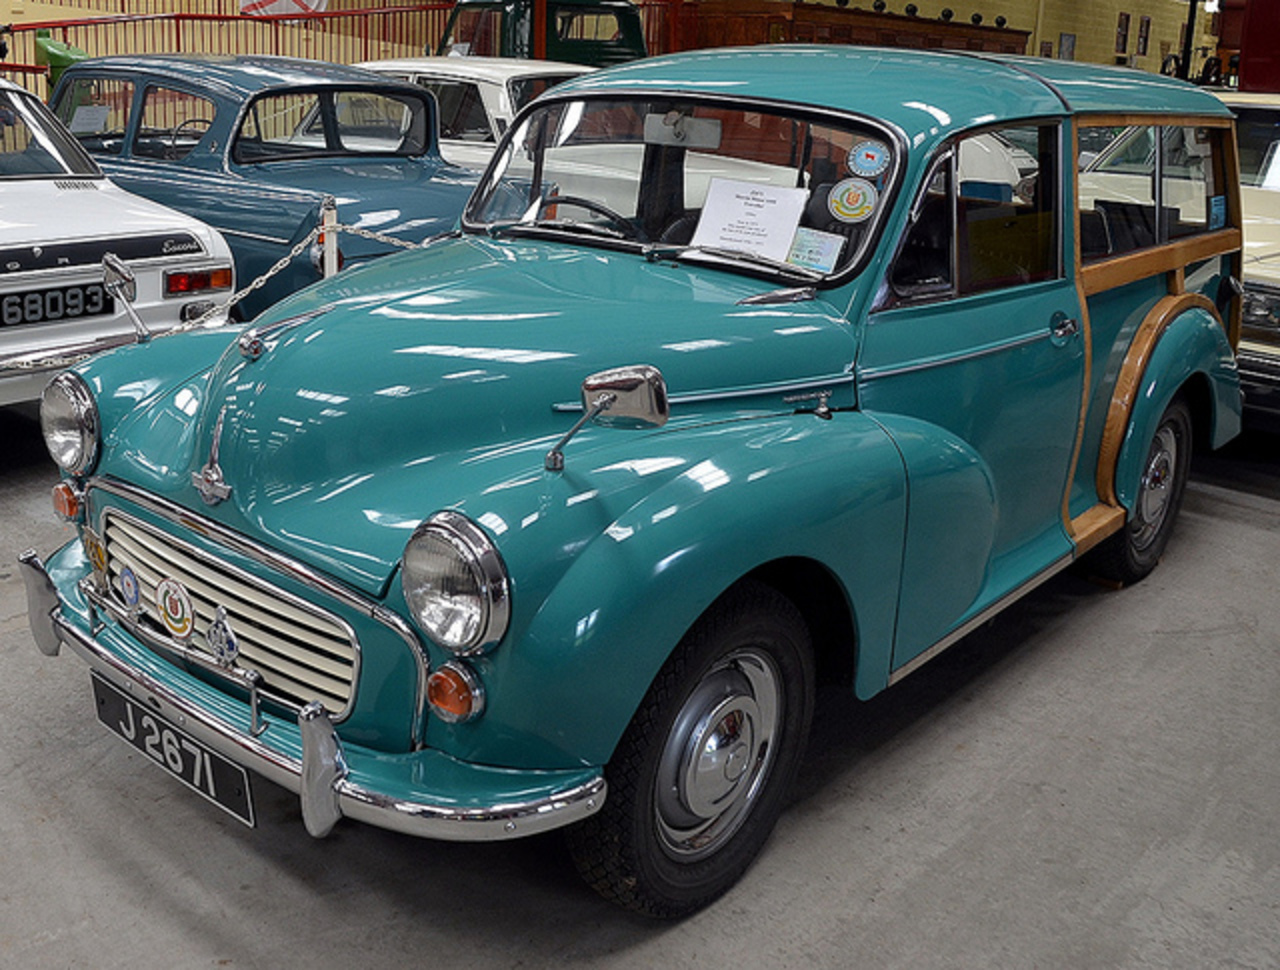 1971 Morris Minor Traveller | Flickr - Photo Sharing!